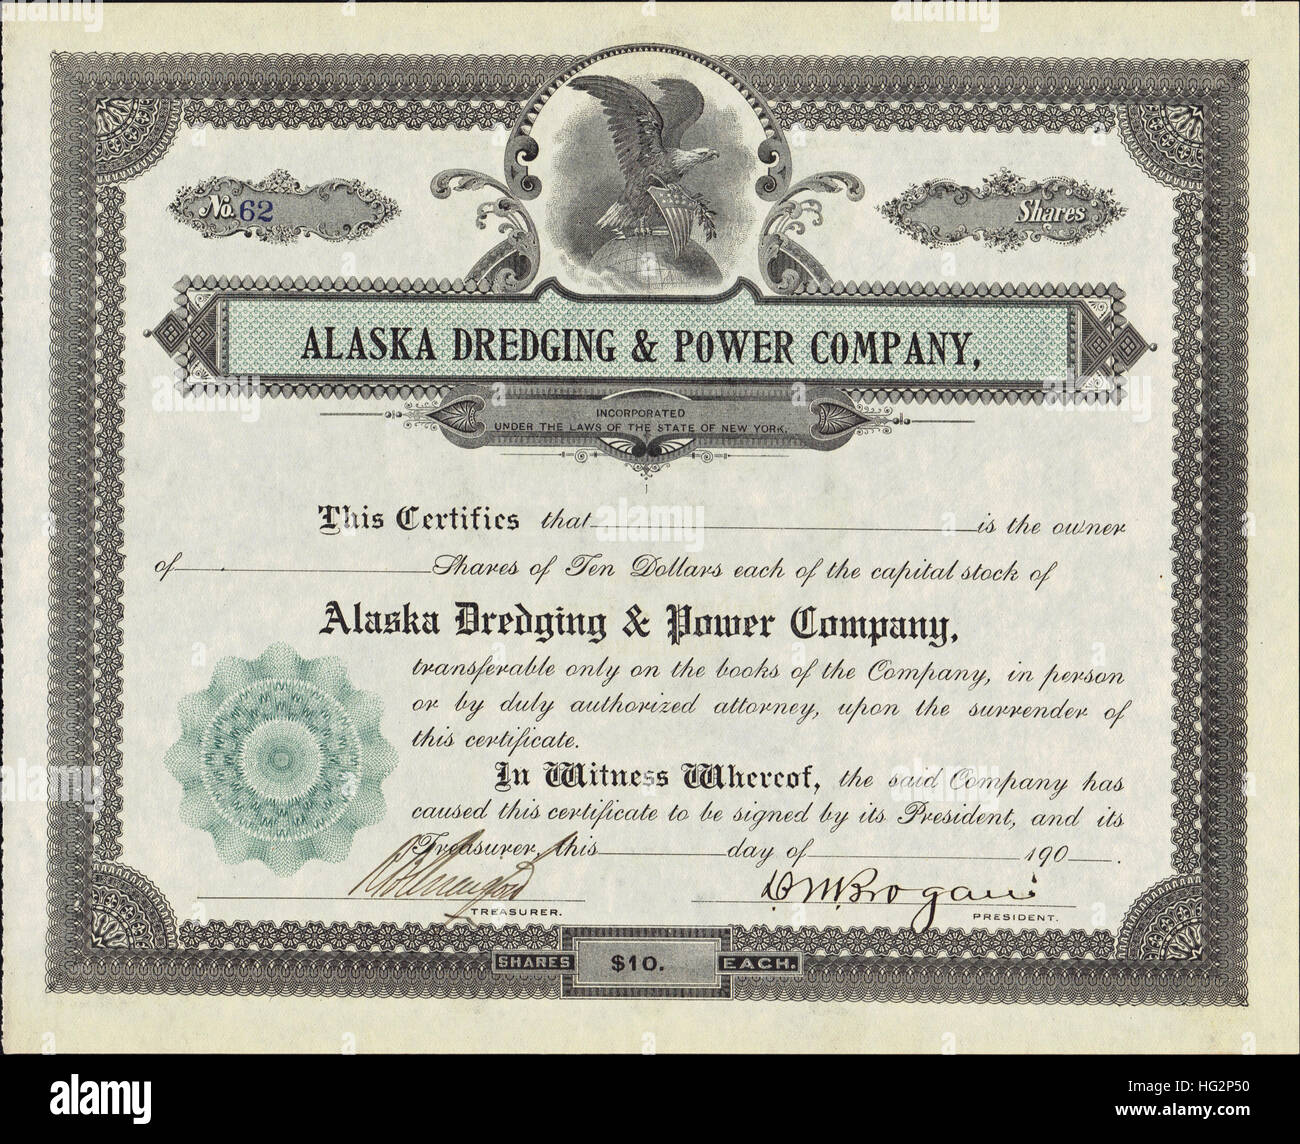 Early 1900s Alaska Dredging and Power Company Stock Certificate - USA - Stock Image